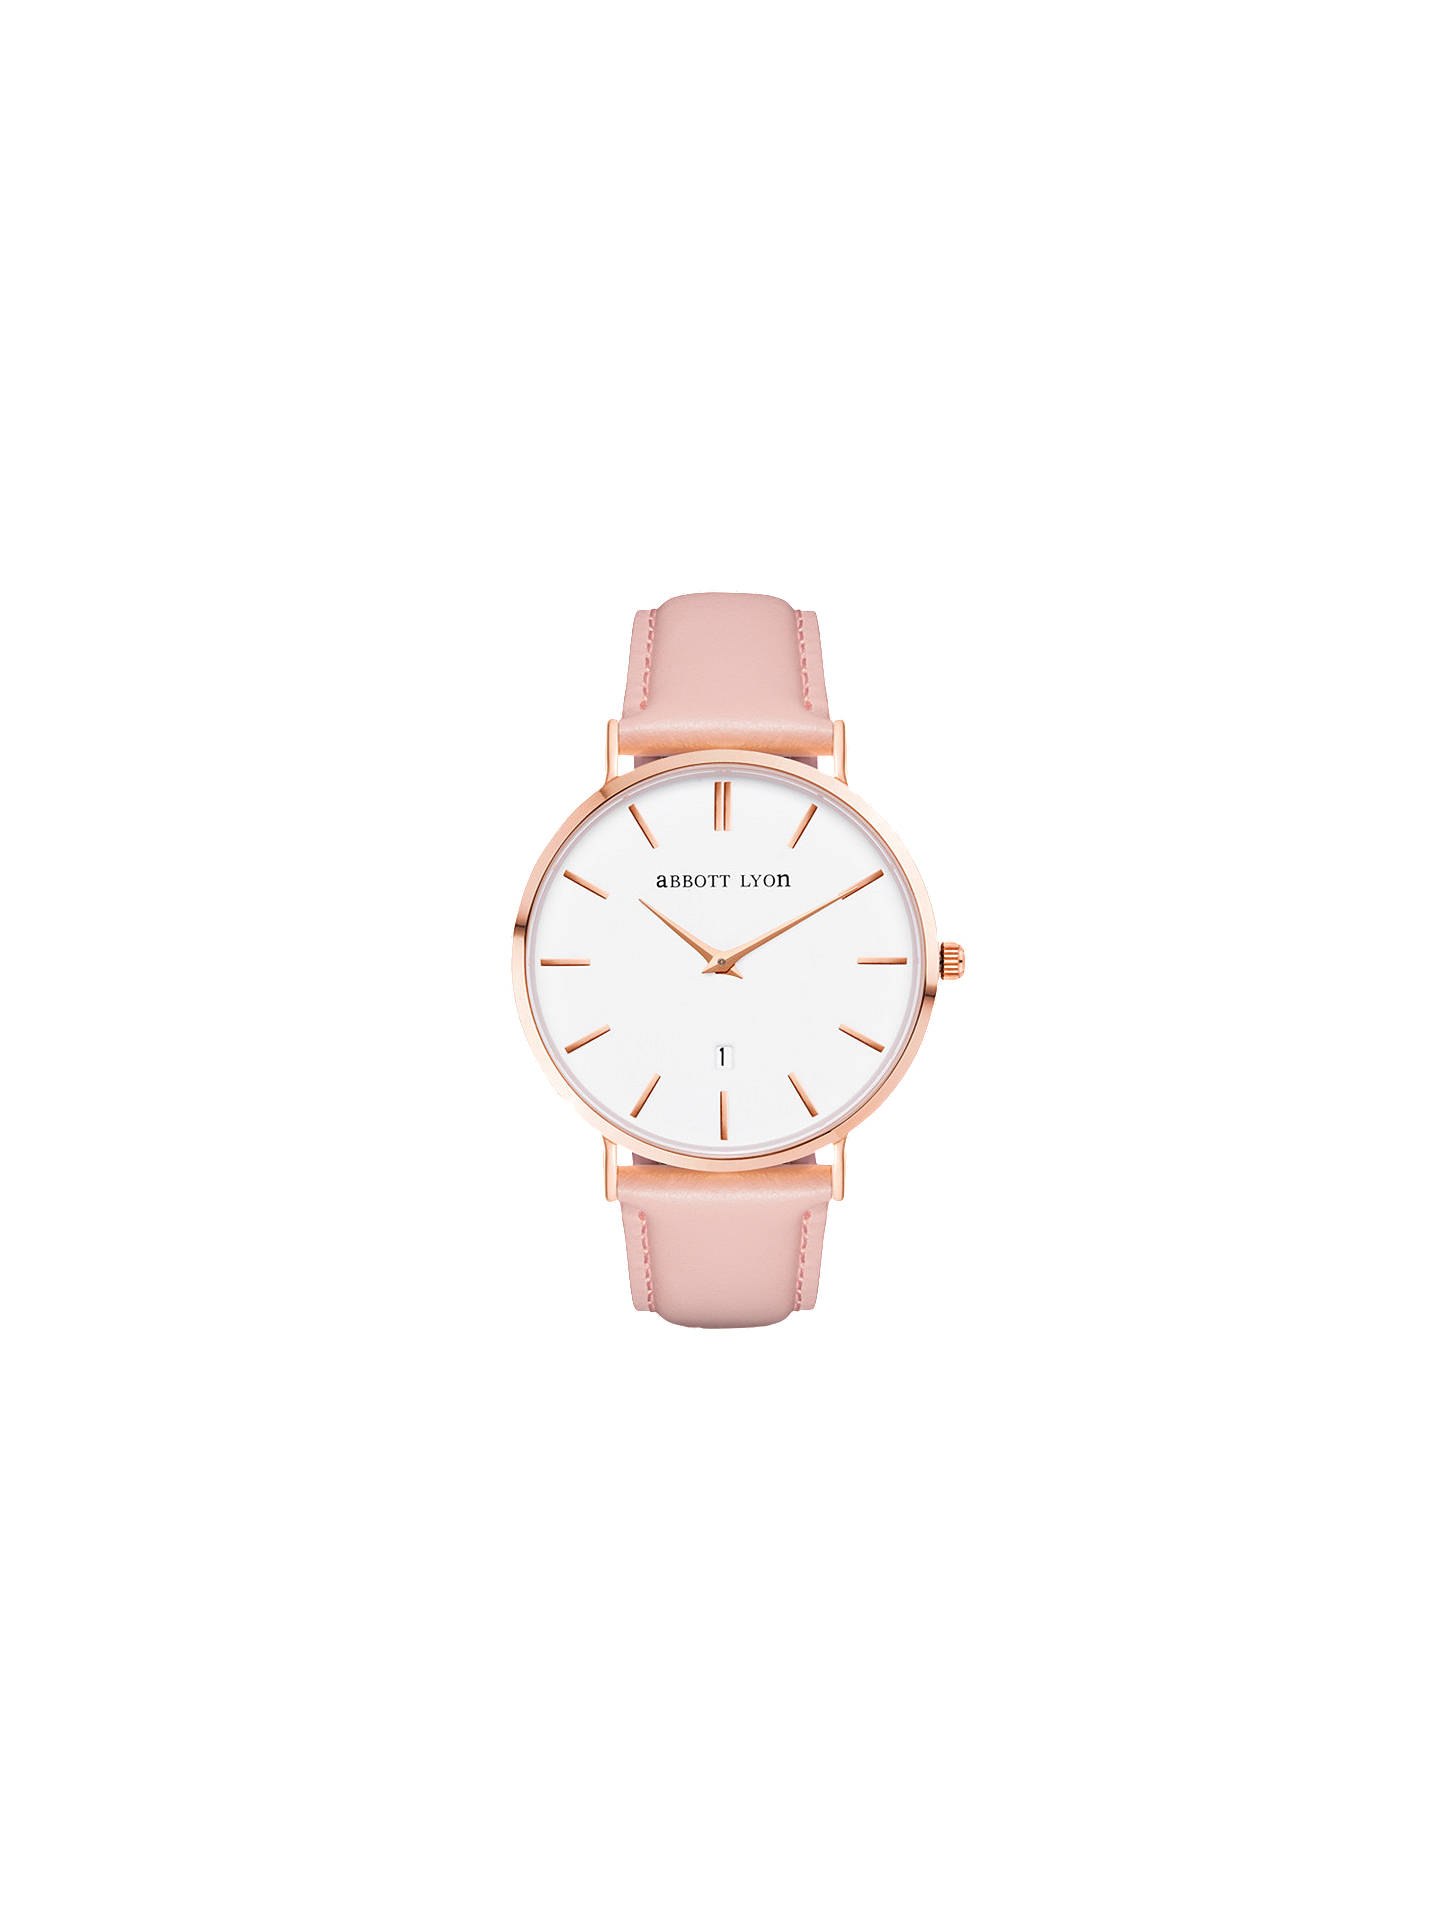 82970b51fe18 Buy Abbott Lyon Women's Kensington 40 Date Leather Strap Watch, Blush/White  Online at ...